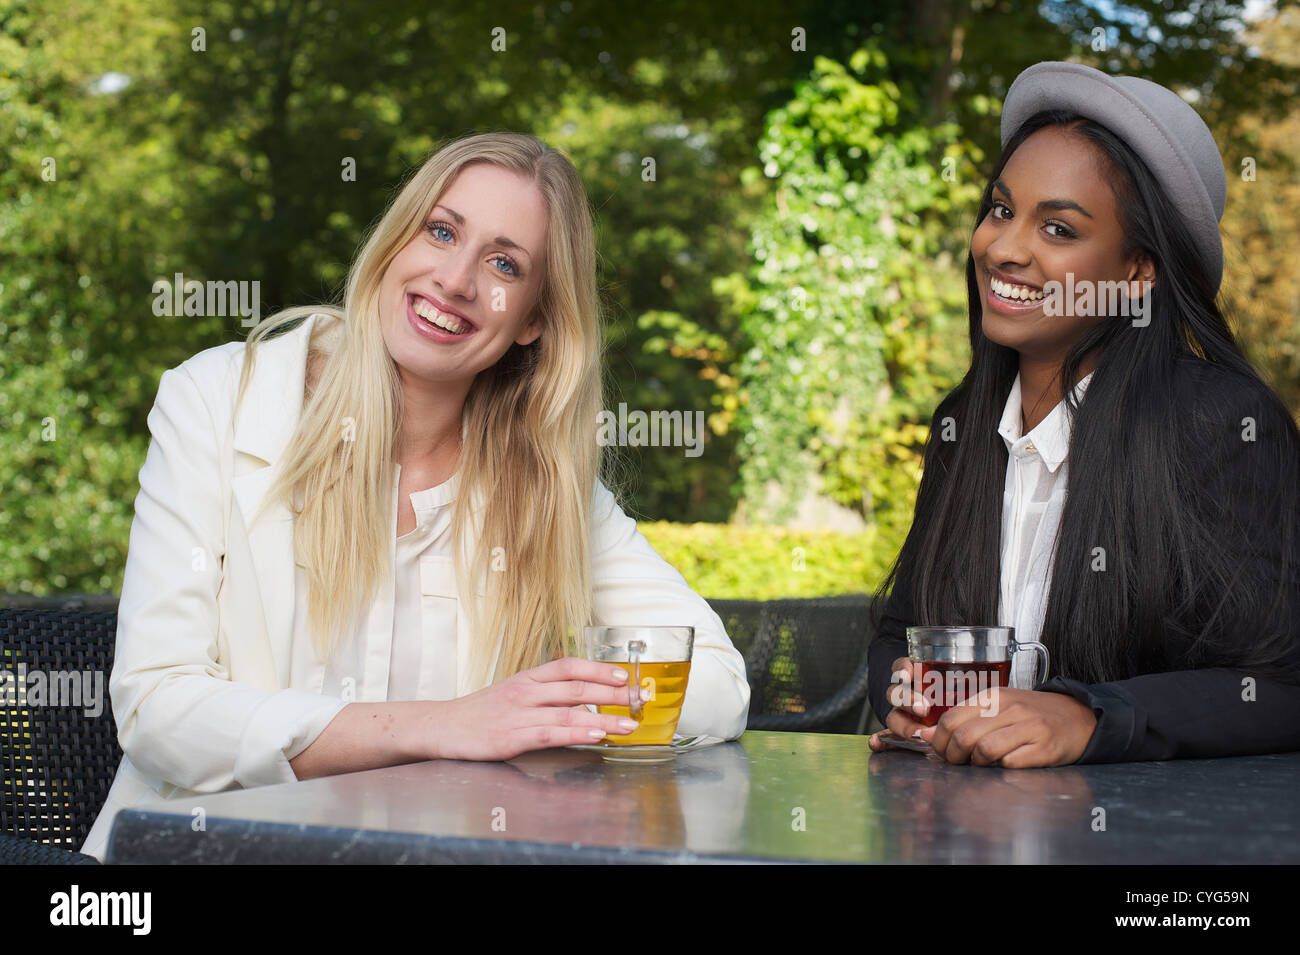 Portrait of two young women friends smiling and having a cup of tea outdoors - Stock Image